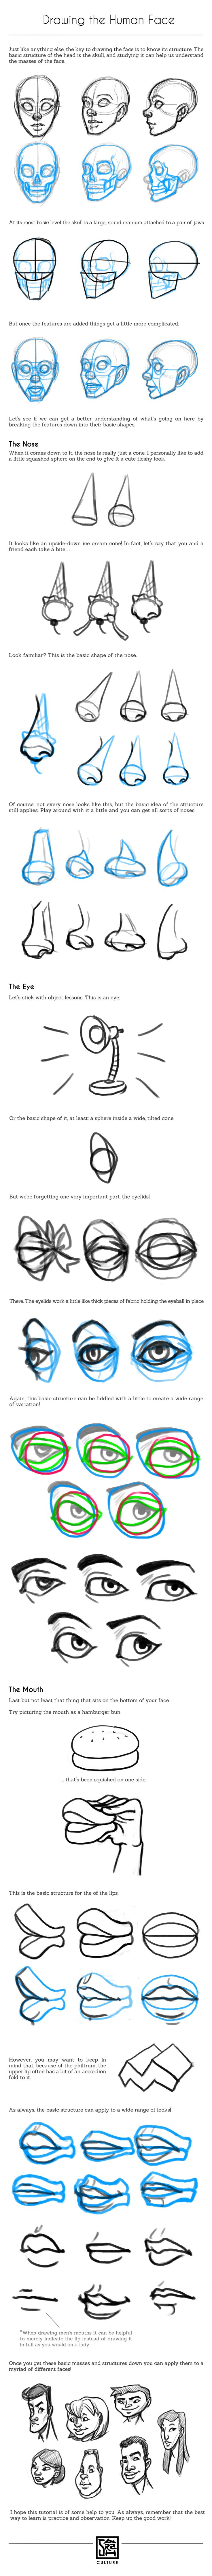 Drawing the Human Face Tutorial by SarahCulture